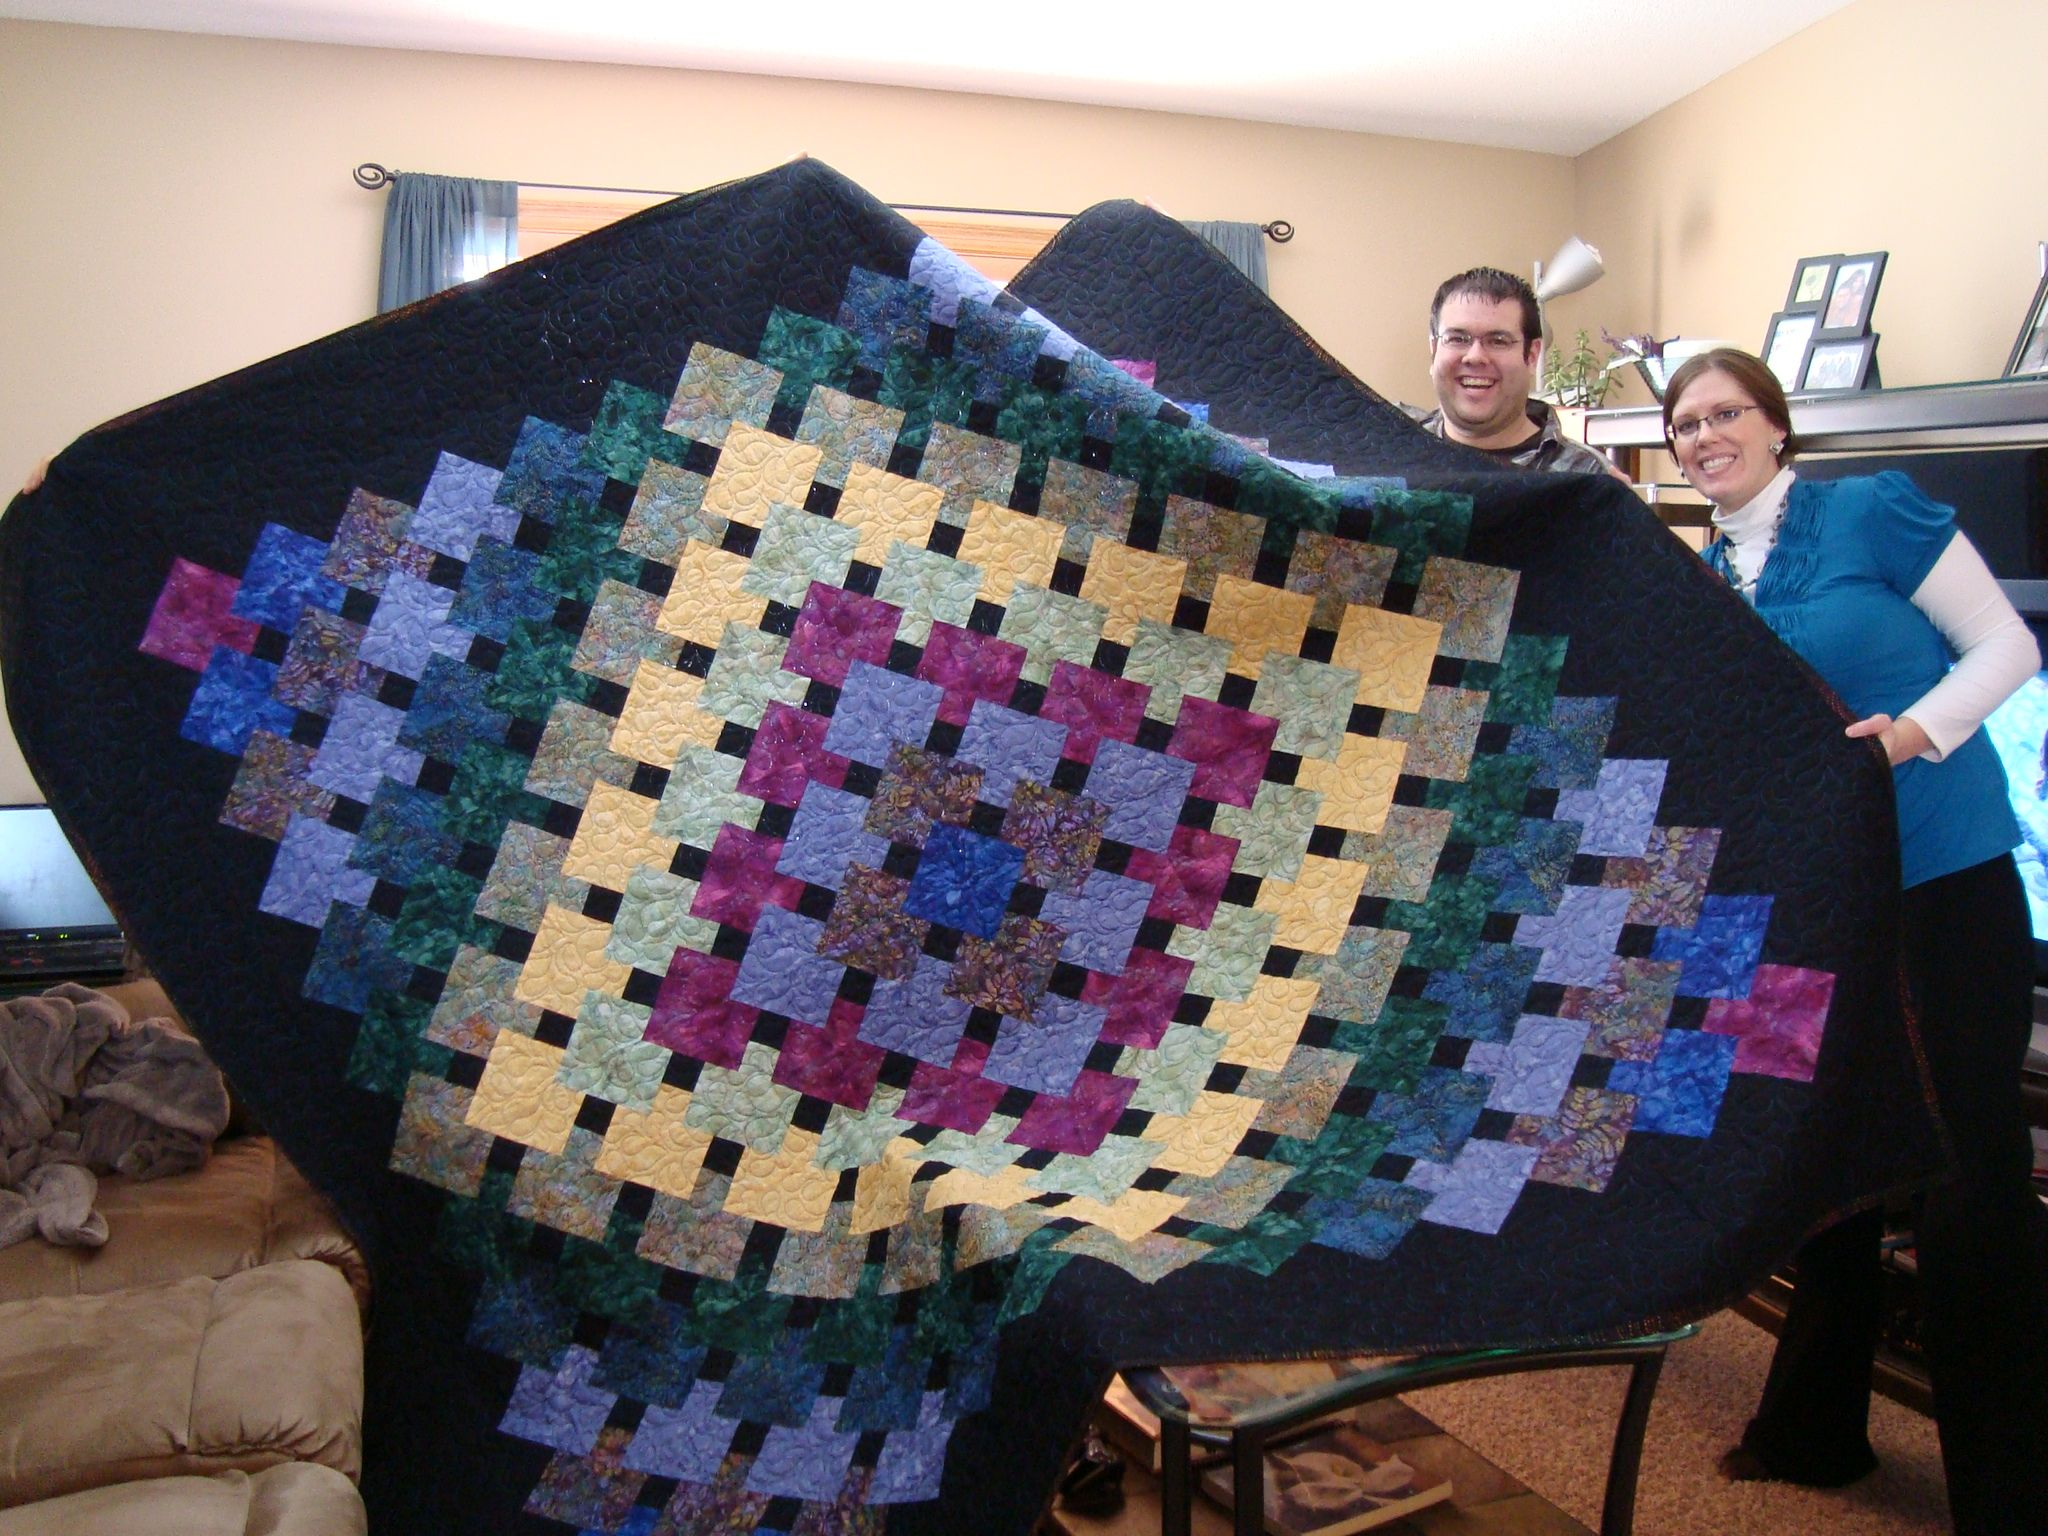 This is the wedding quilt I made for my son and his bride.  I paper-pieced it.